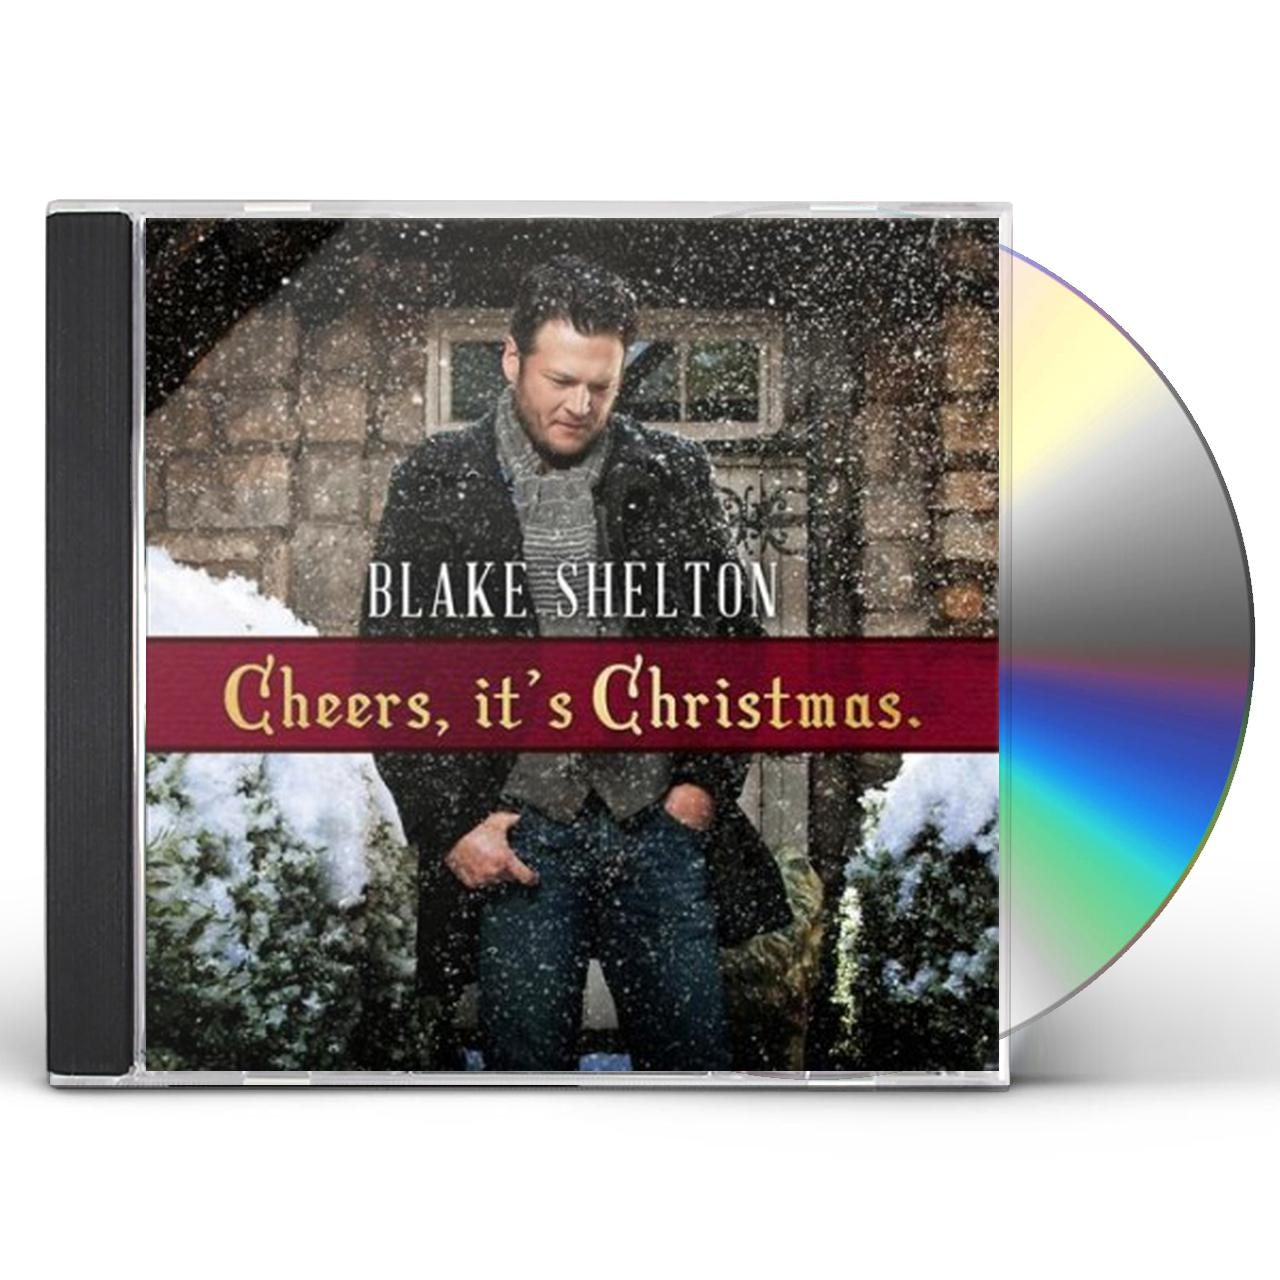 Blake Shelton Cheers Its Christmas.Blake Shelton Cheers It S Christmas 2017 Edition Cd